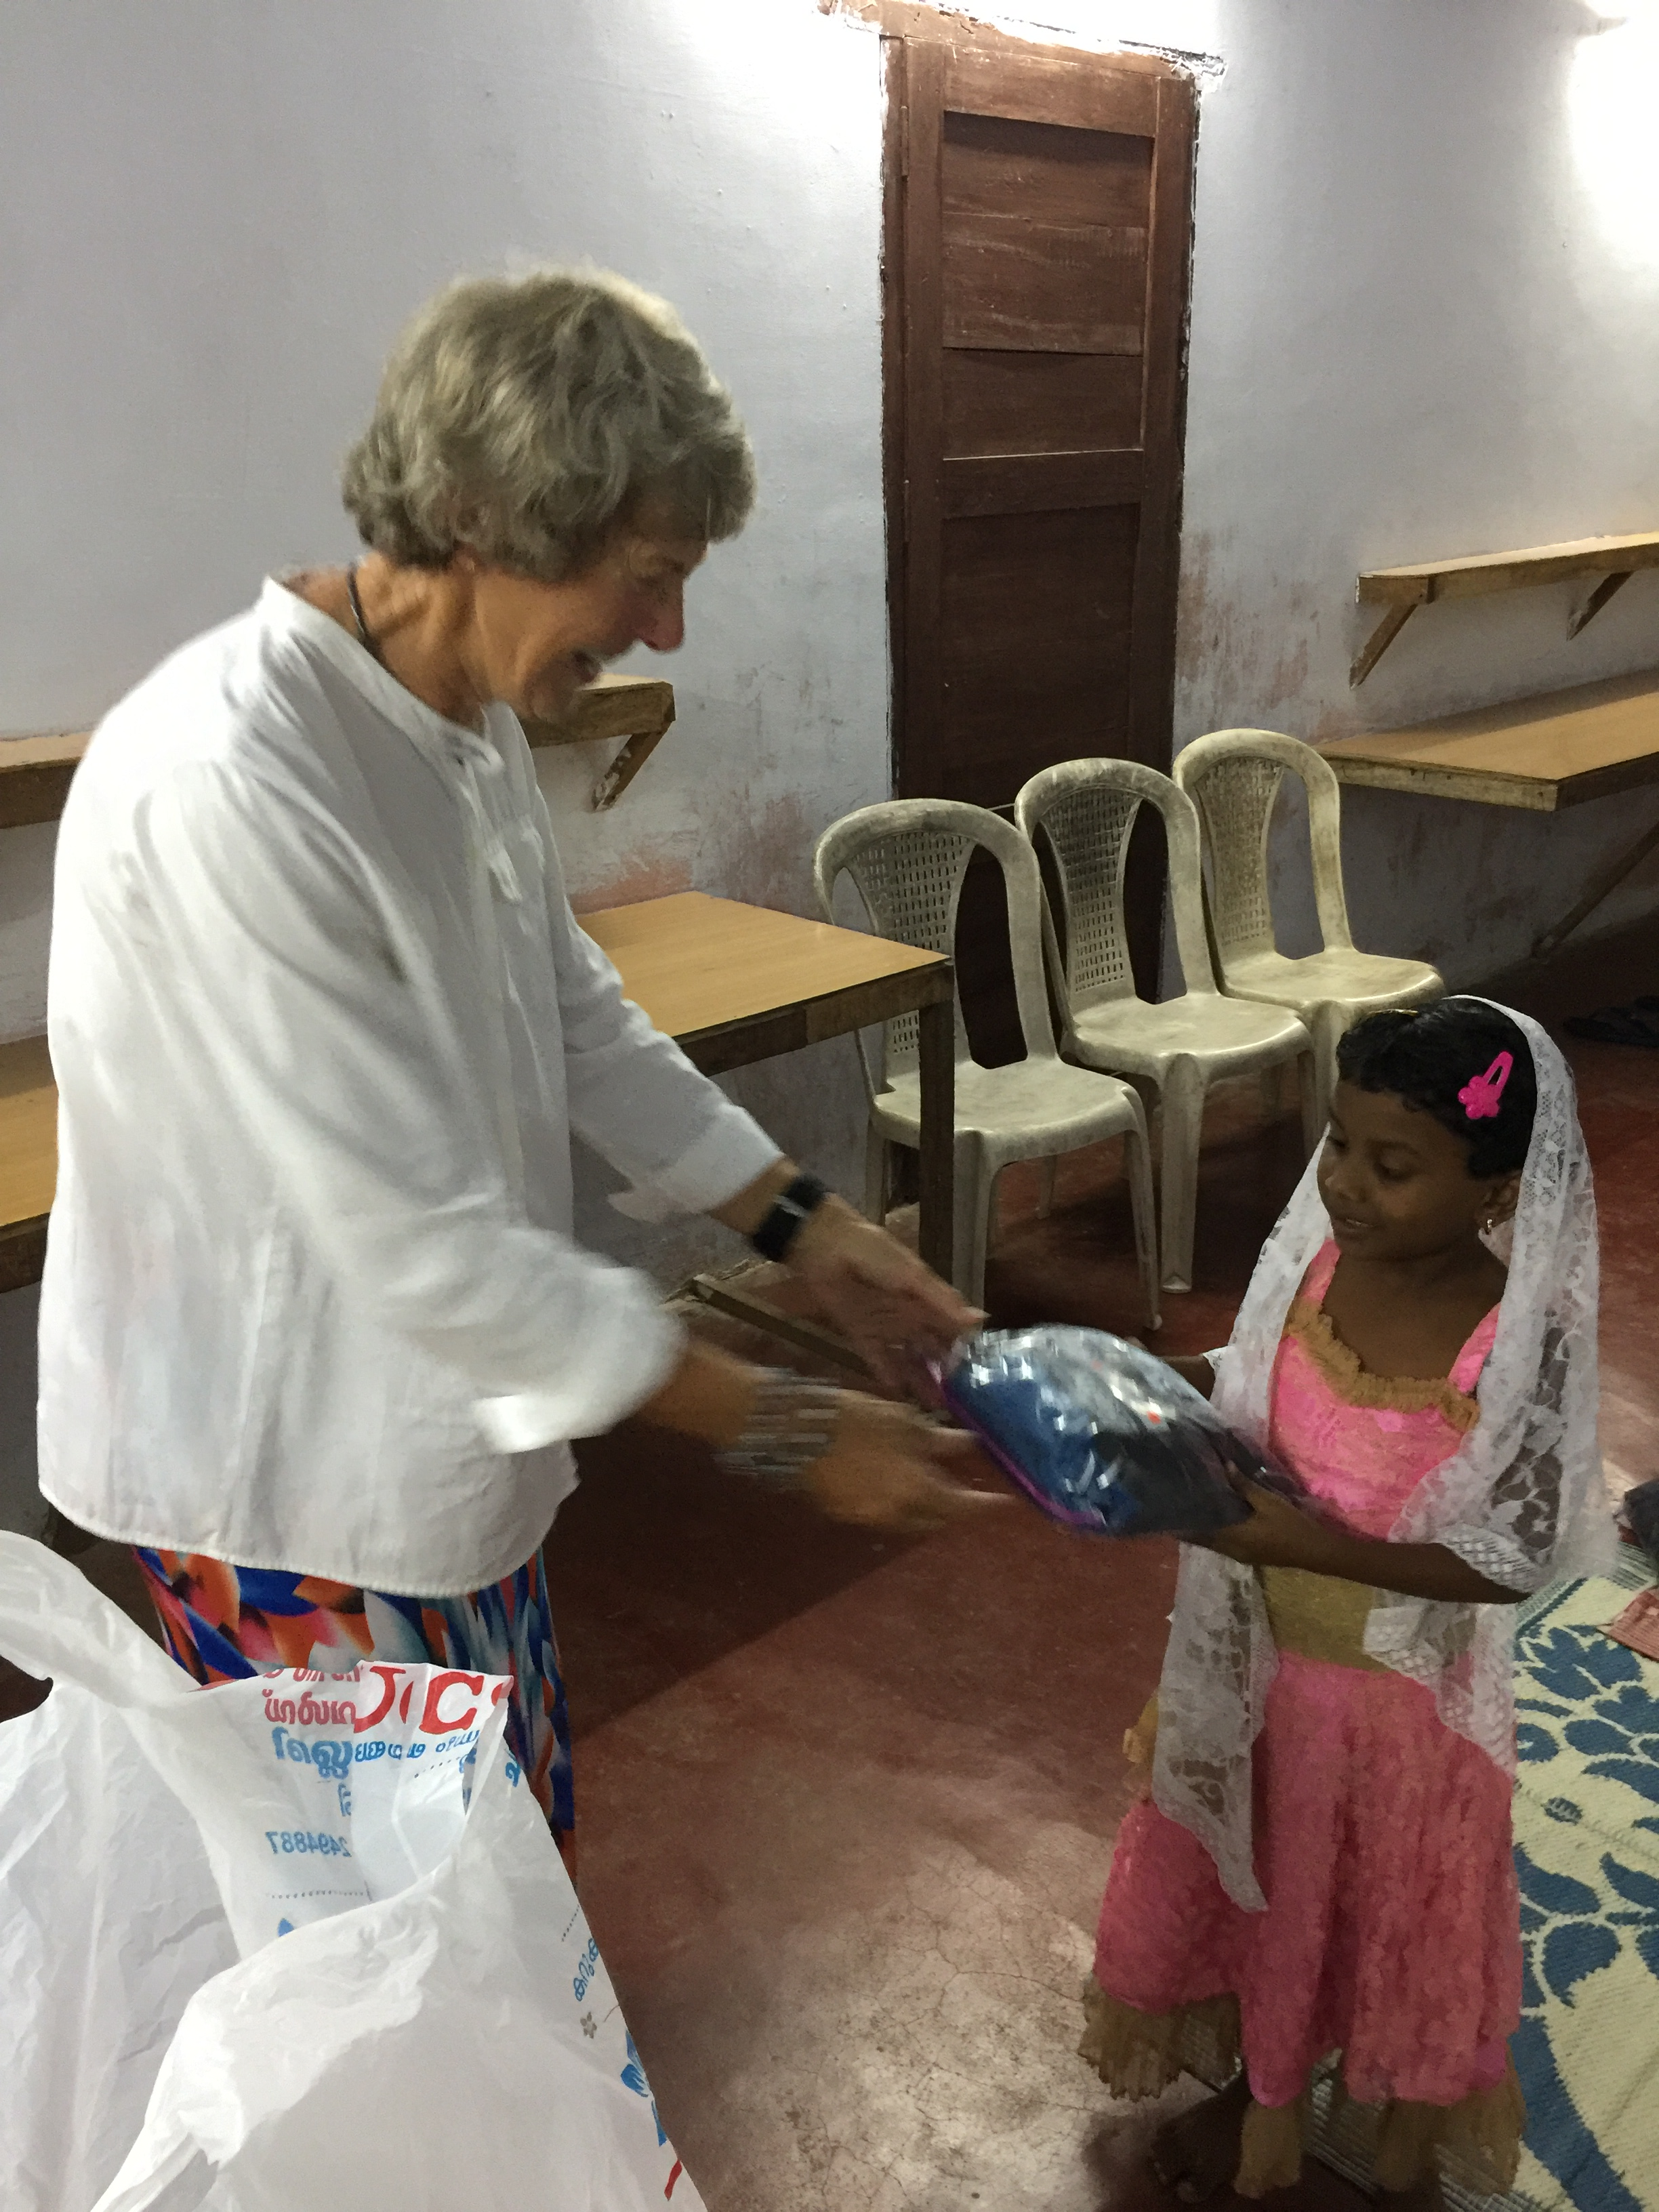 Hennie purchased cloths for children and Carol Grosvenor send some gifts for staff at orphanage. Hennie is distributing.